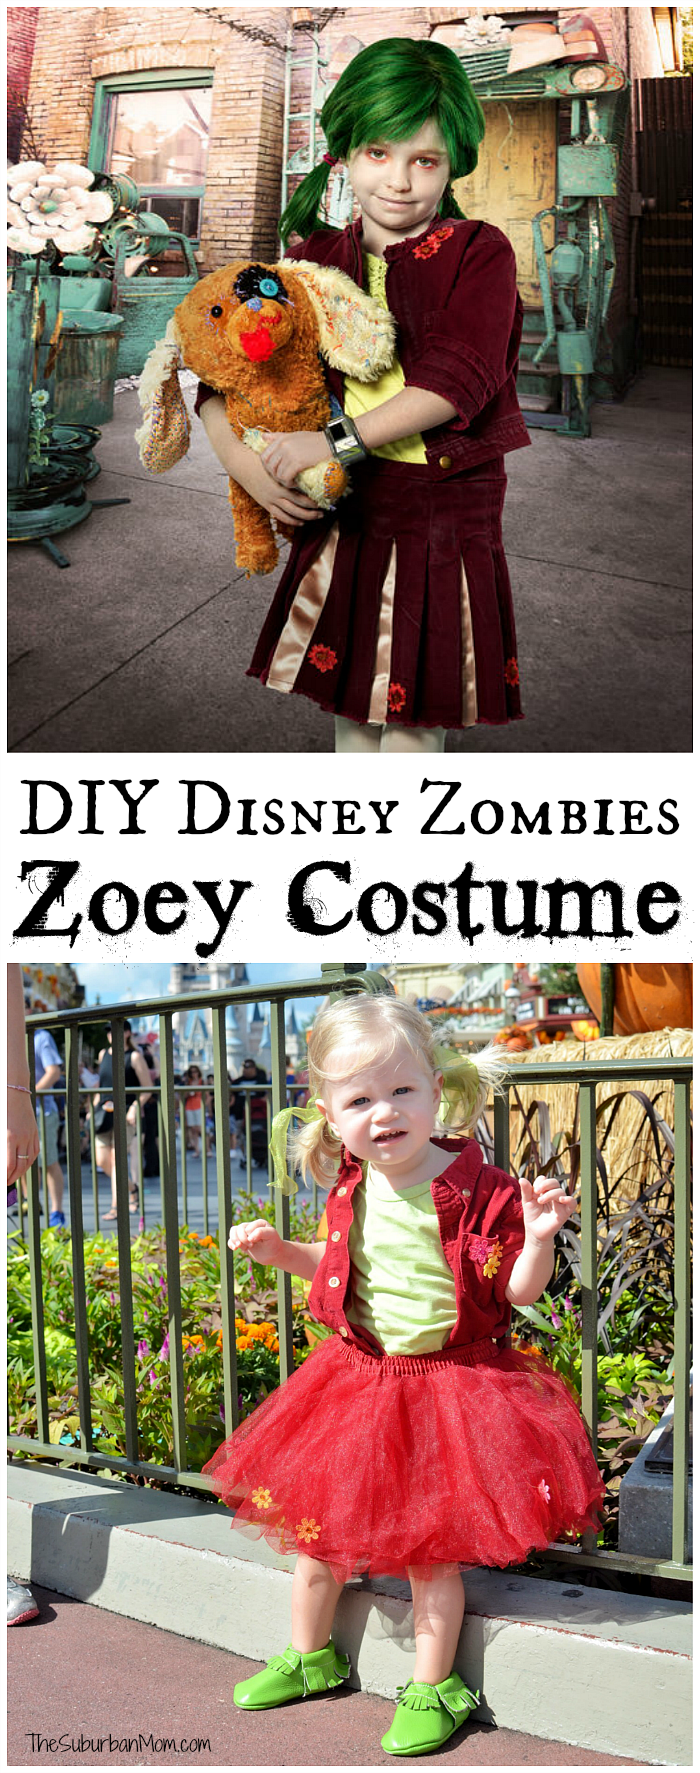 DIY Disney Zombies Zoey Costume